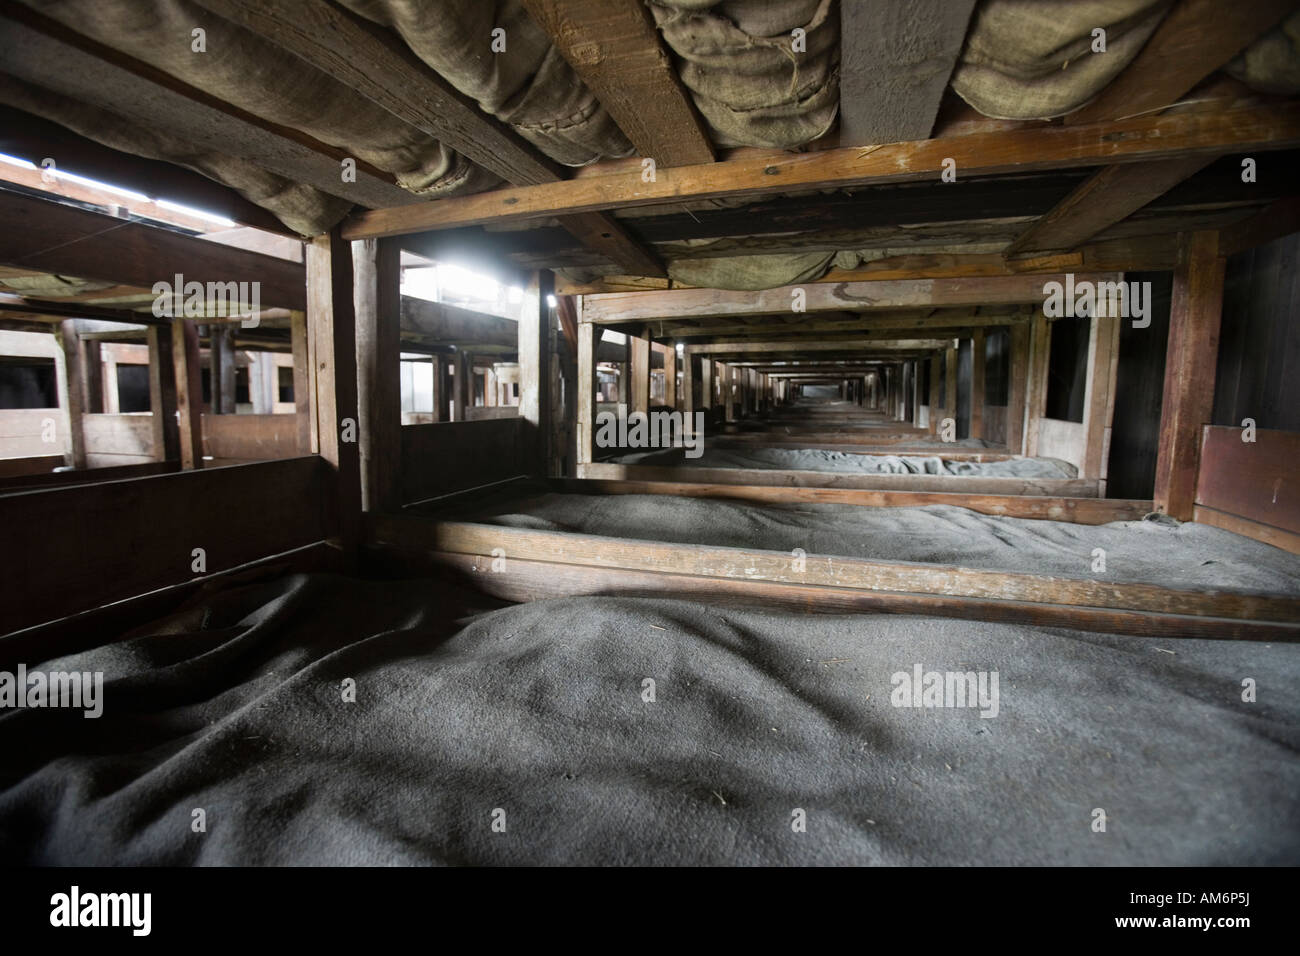 Majdanek Death Camp. 500-800 prisoners slept in barracks originally designed to house 52 horse stalls. - Stock Image